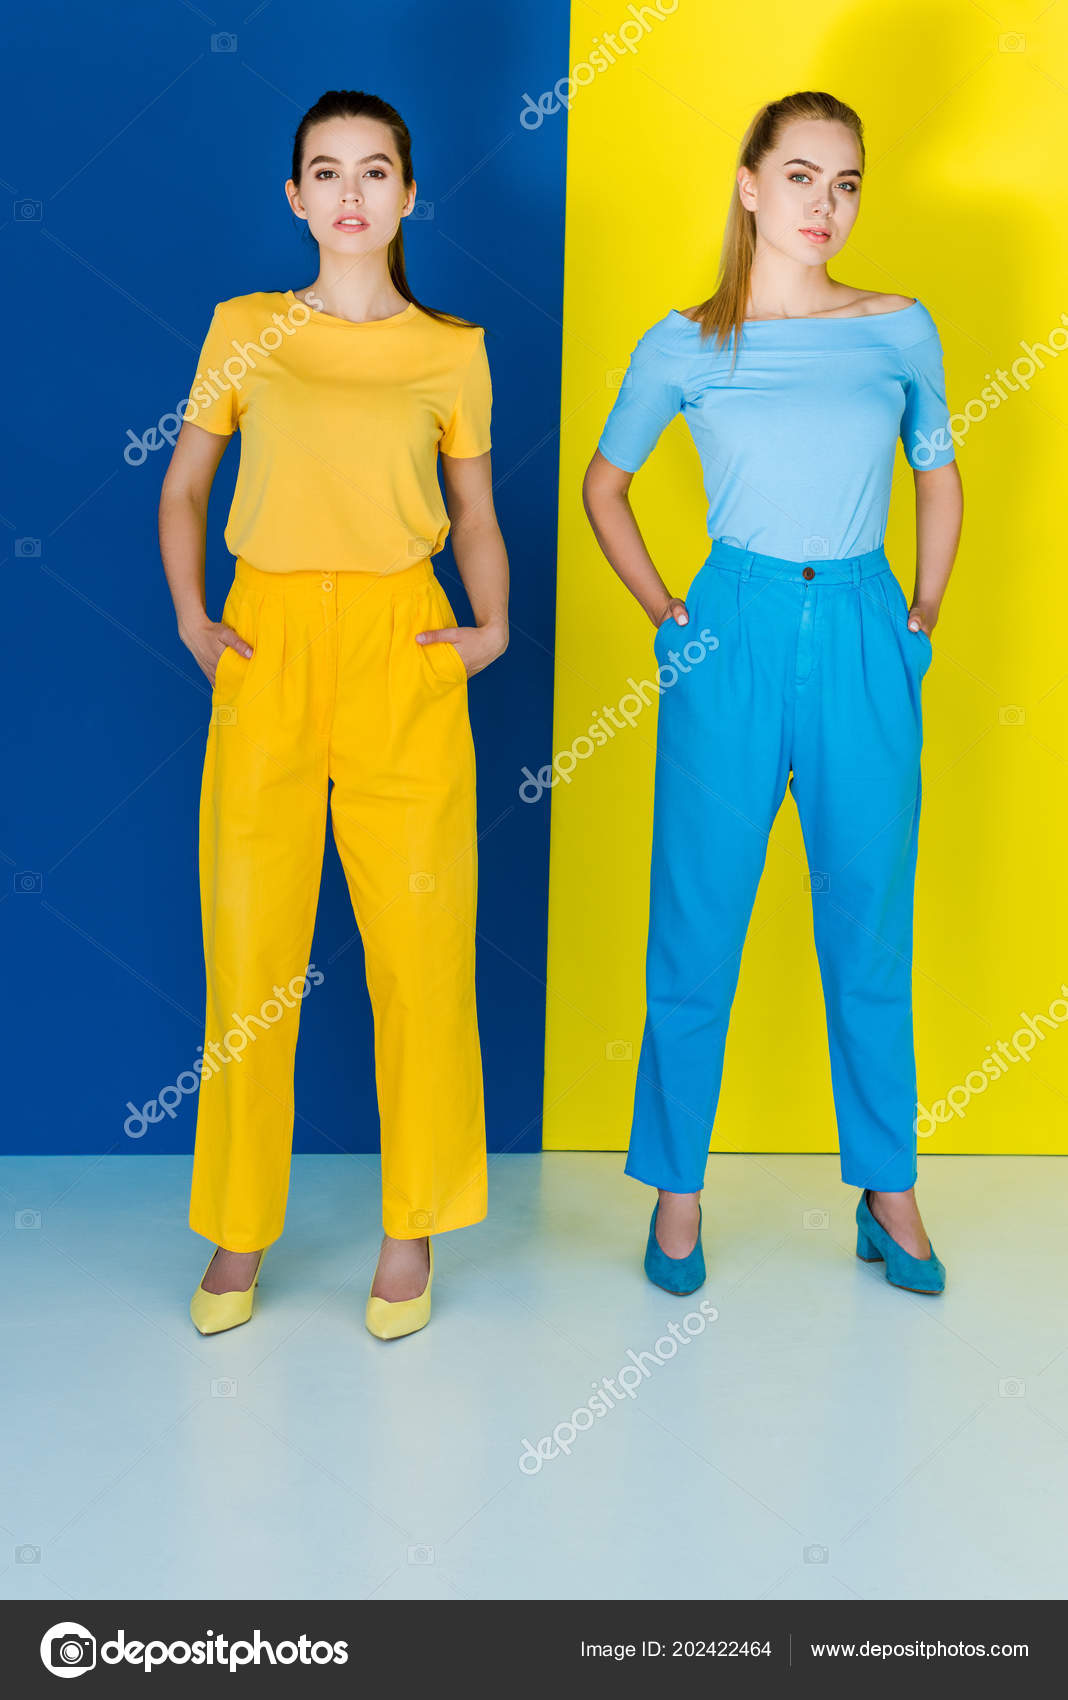 22+ Blue And Yellow Outfit  Images